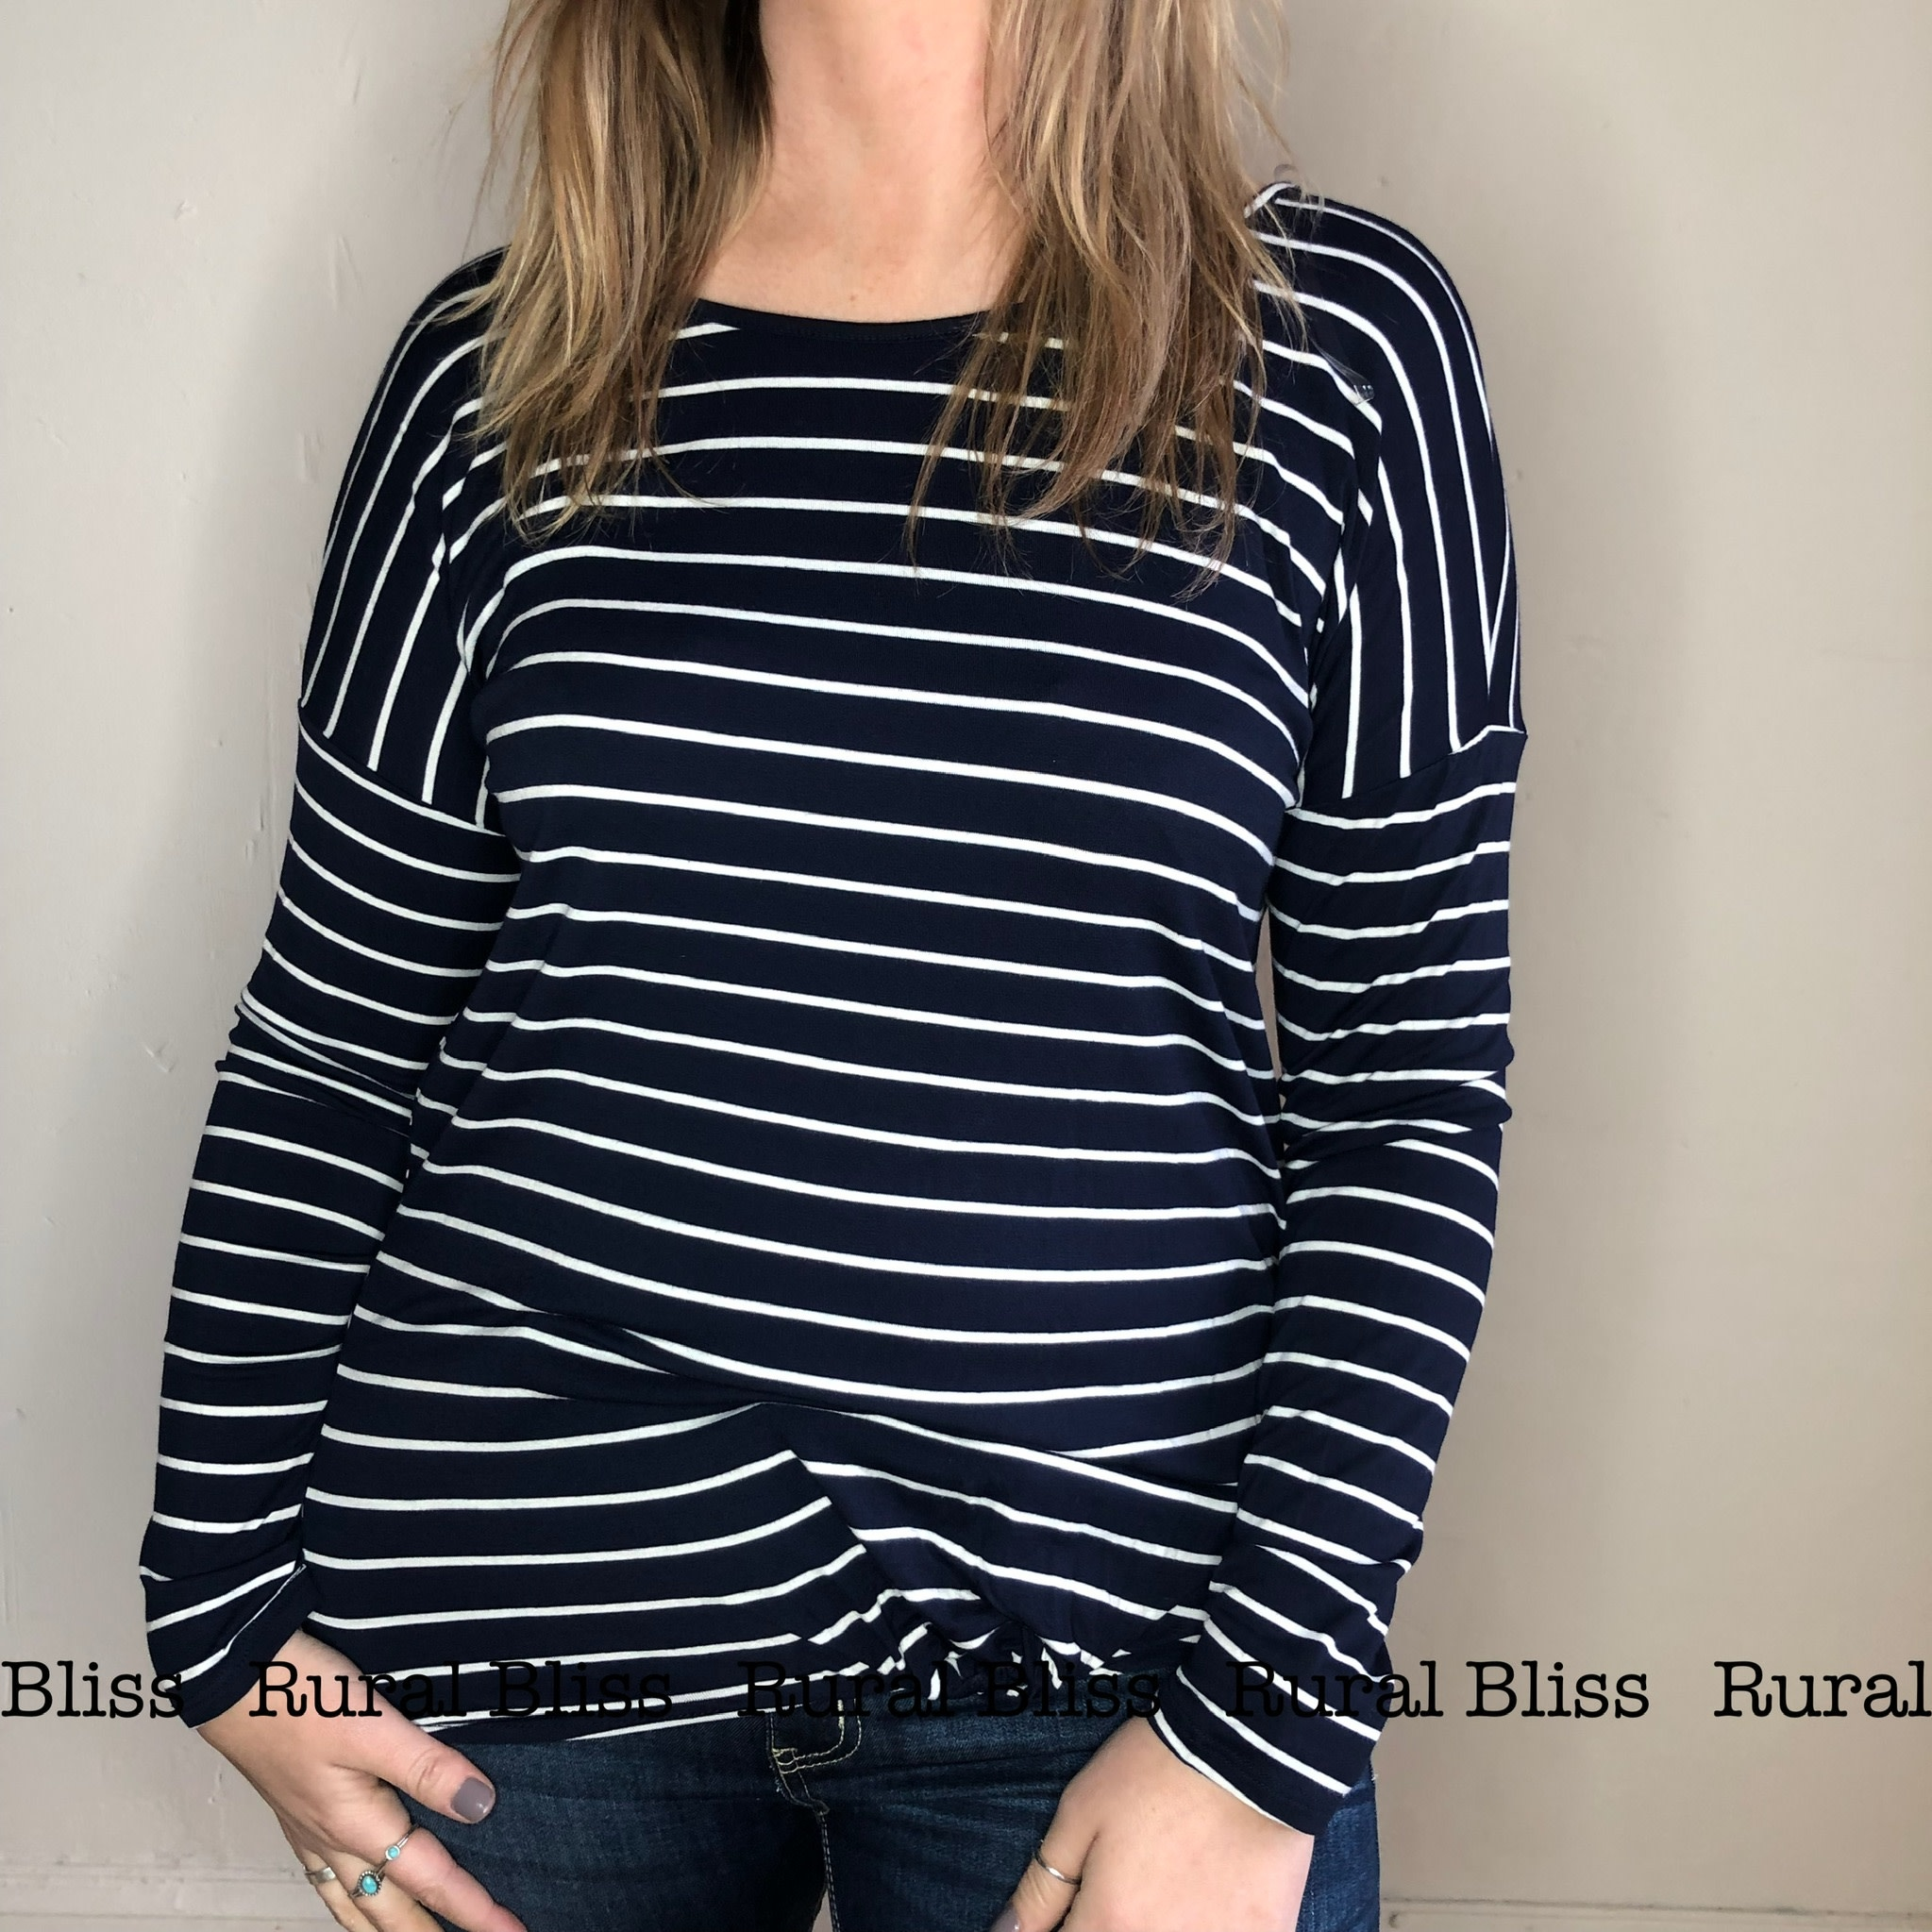 Knot Today Top Navy